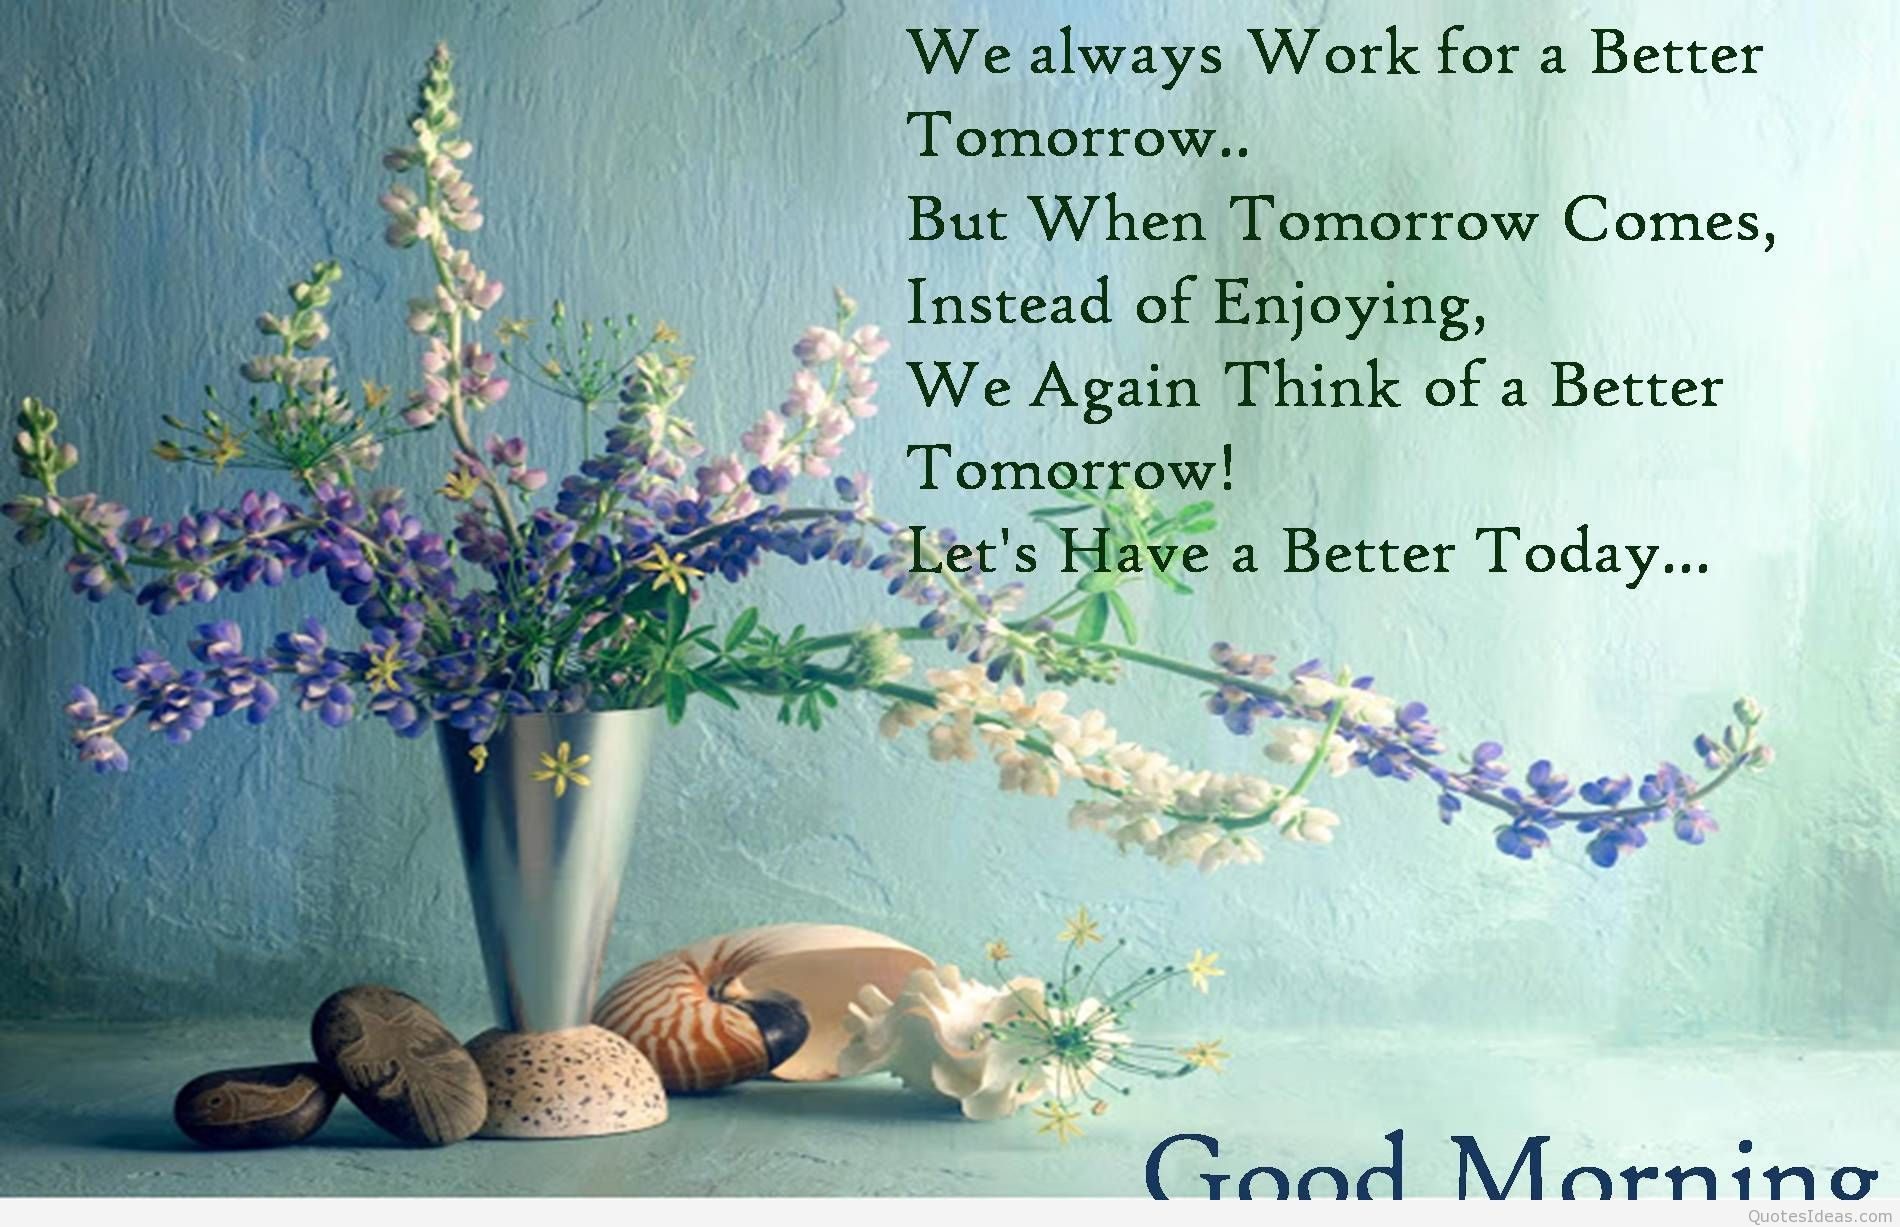 Good Morning Saturday Wallpaper. 84+ Saturday Good Morning Quotes Image Pictures Greetings